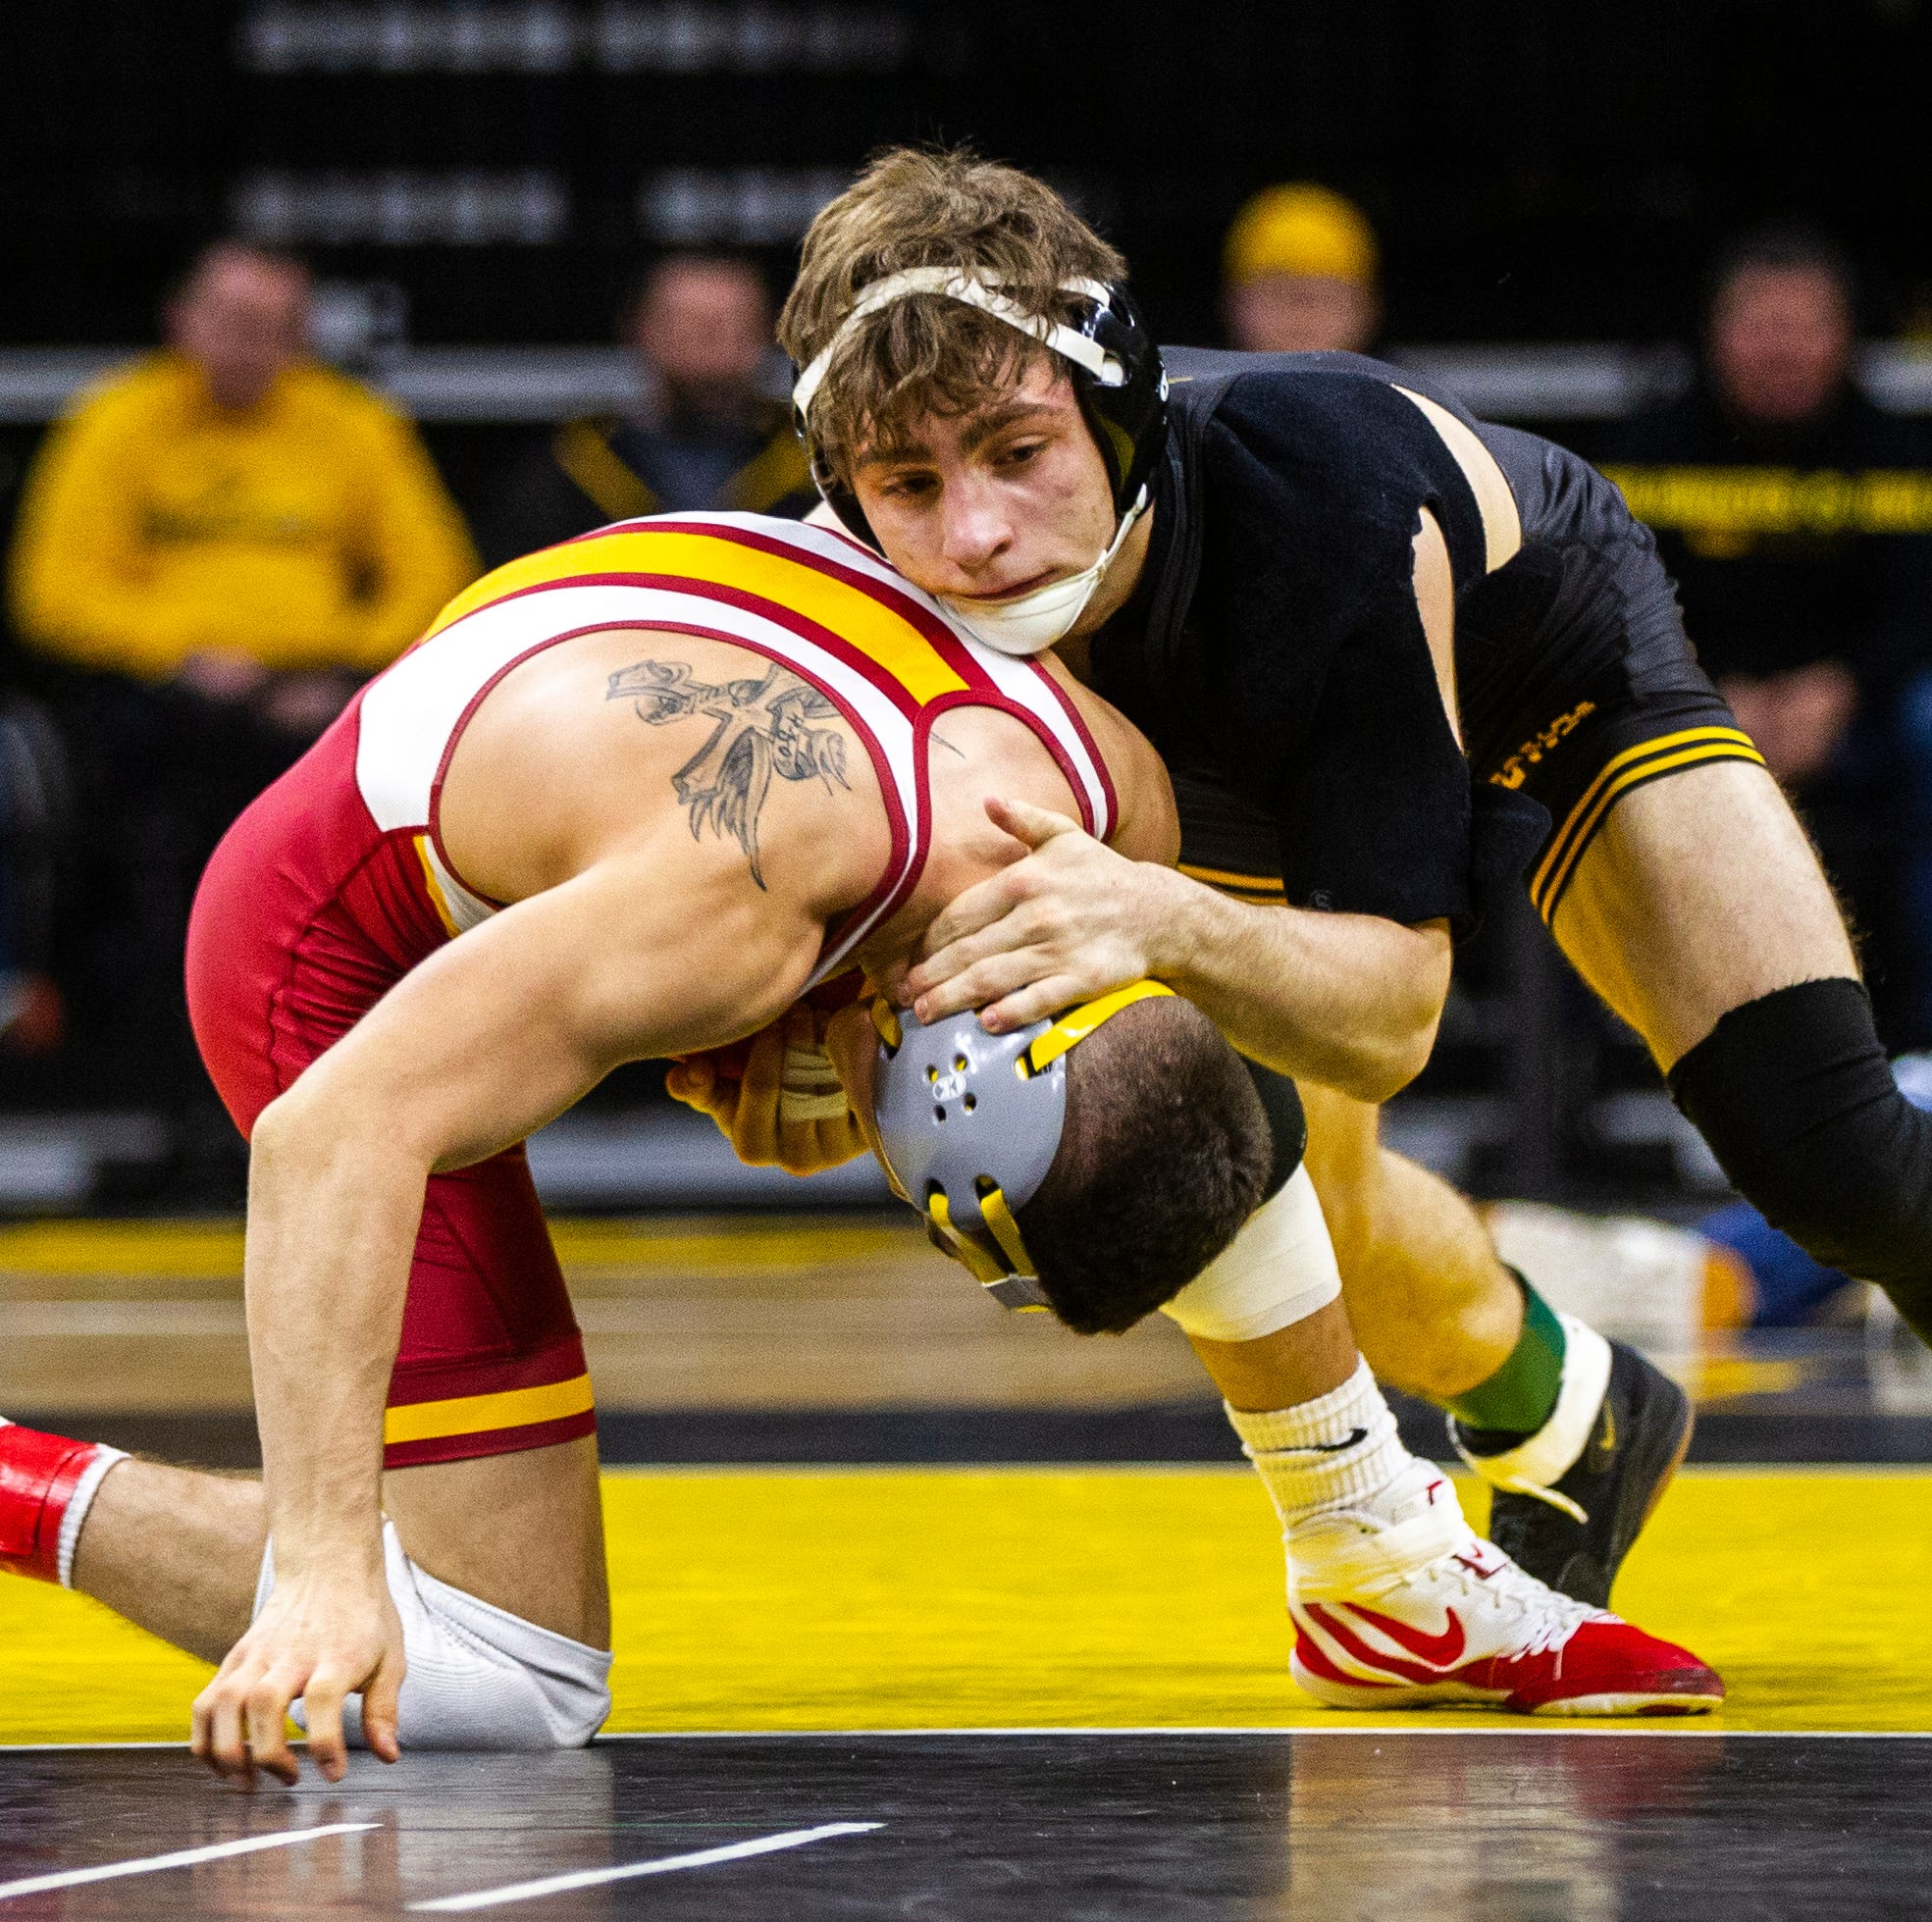 Wrestling Mailbag: A big three classic? Plus some early thoughts on the Midlands and Scuffle